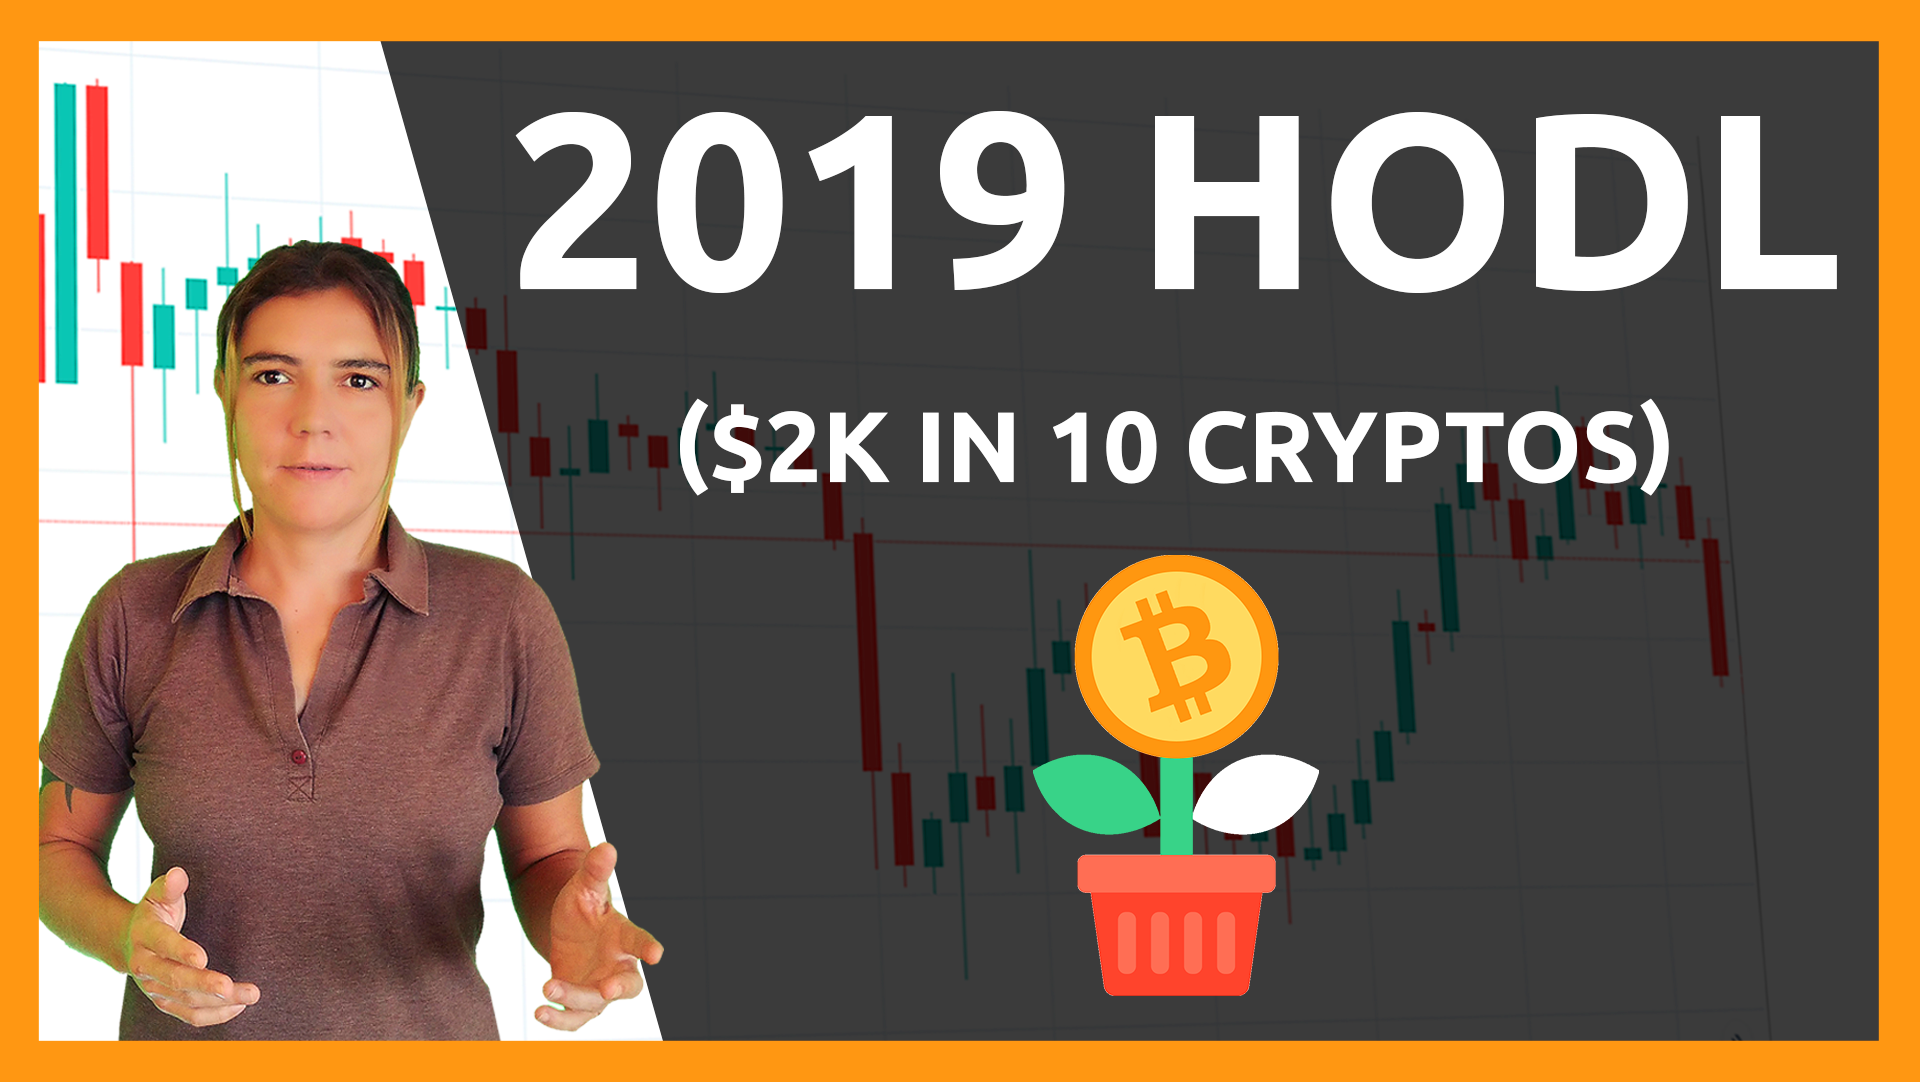 2019 hold series (2k in 10 cryptos)